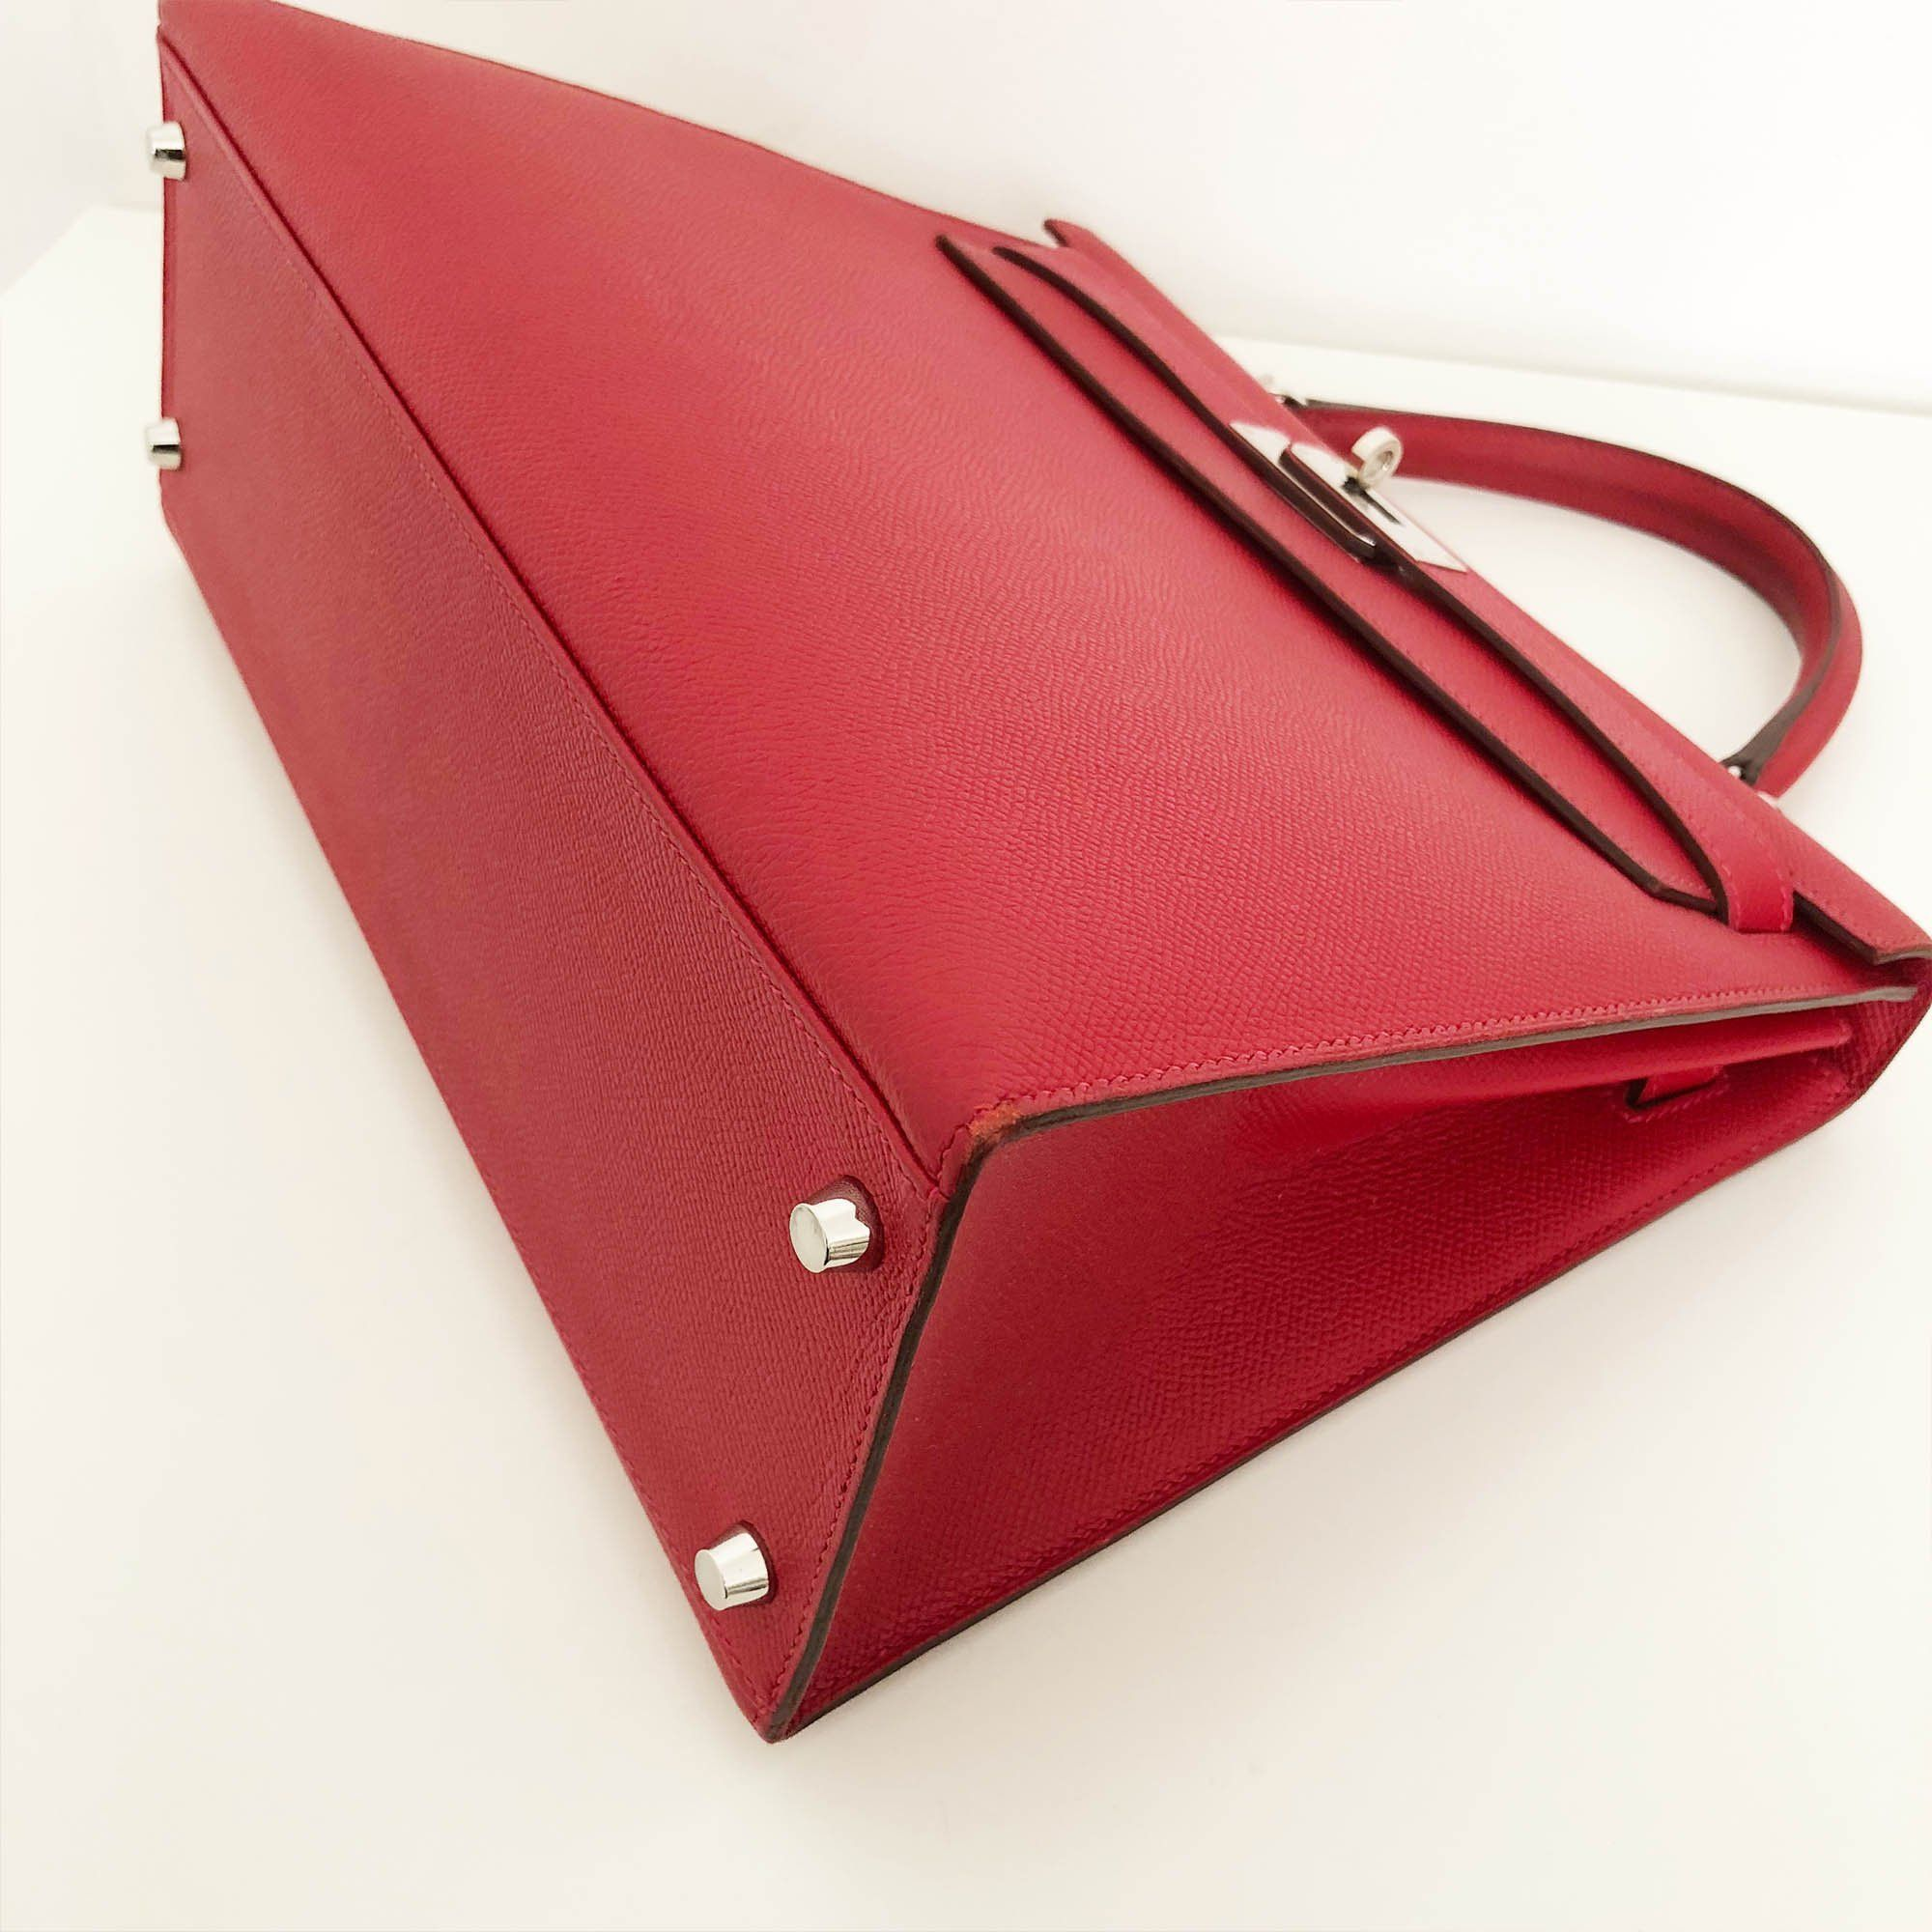 Hermes Kelly Epsom 32 in Red